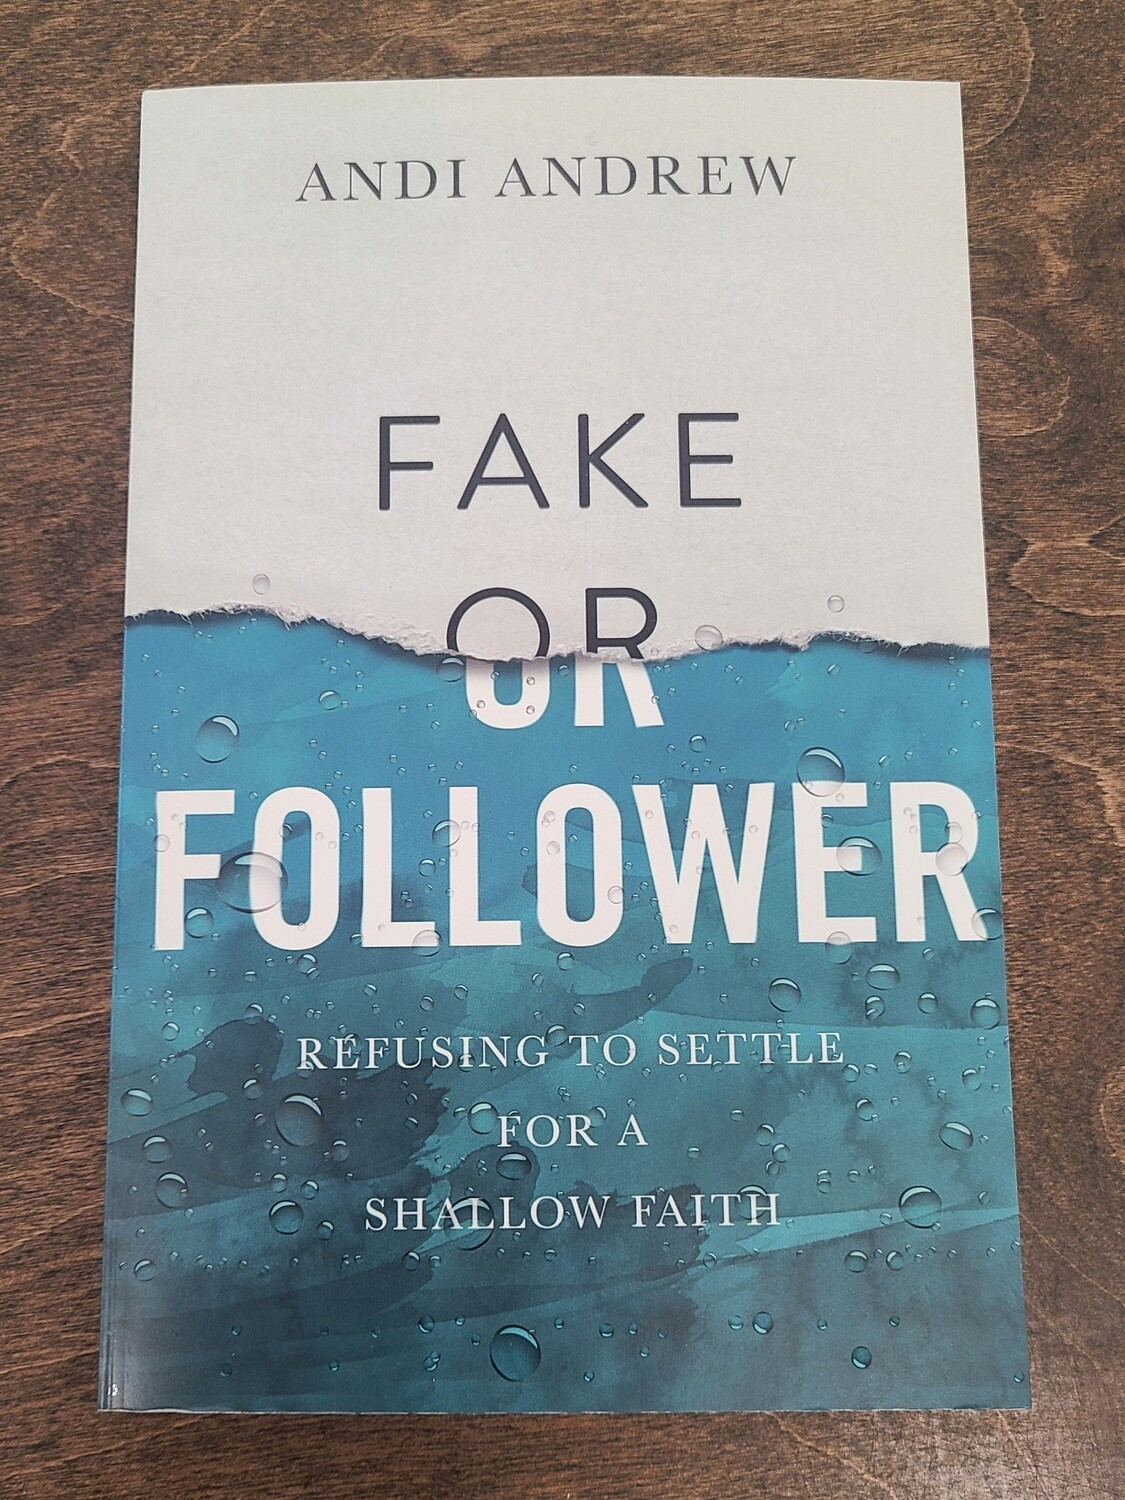 Fake or Follower: Refusing to Settle for a Shallow Faith by Andi Andrew